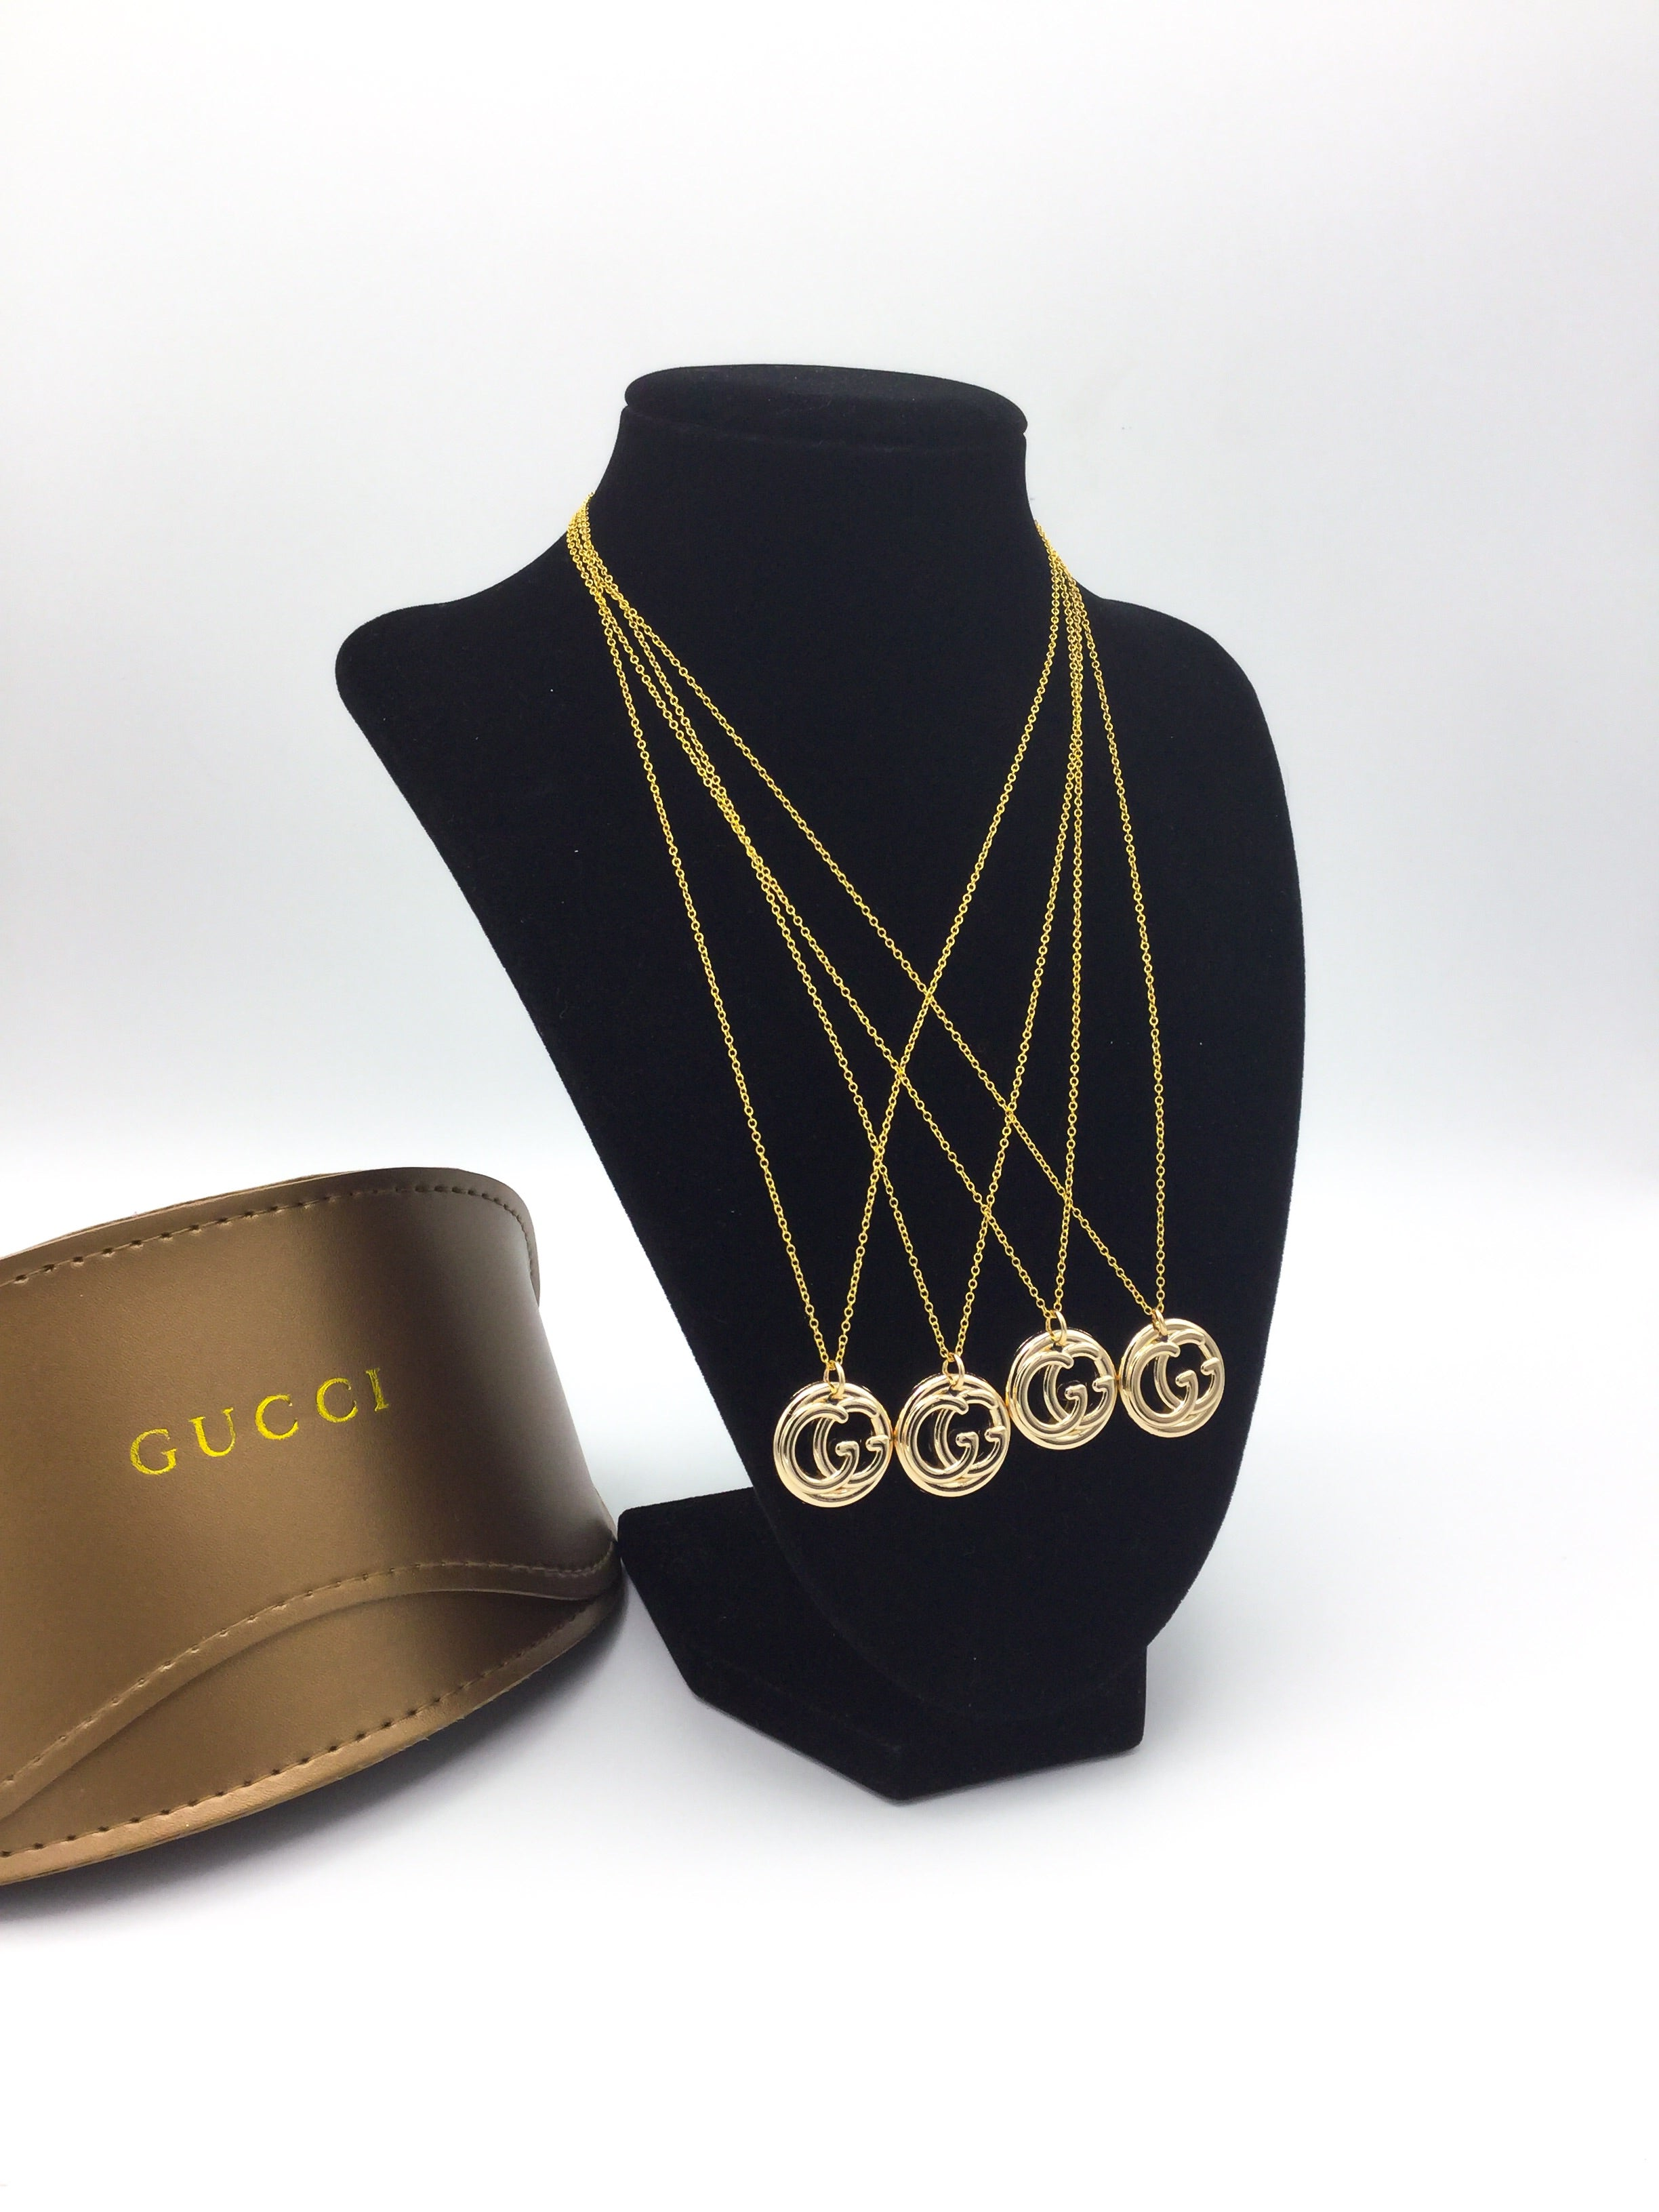 Gucci Cut-Out Button Necklace by Designer Therapy